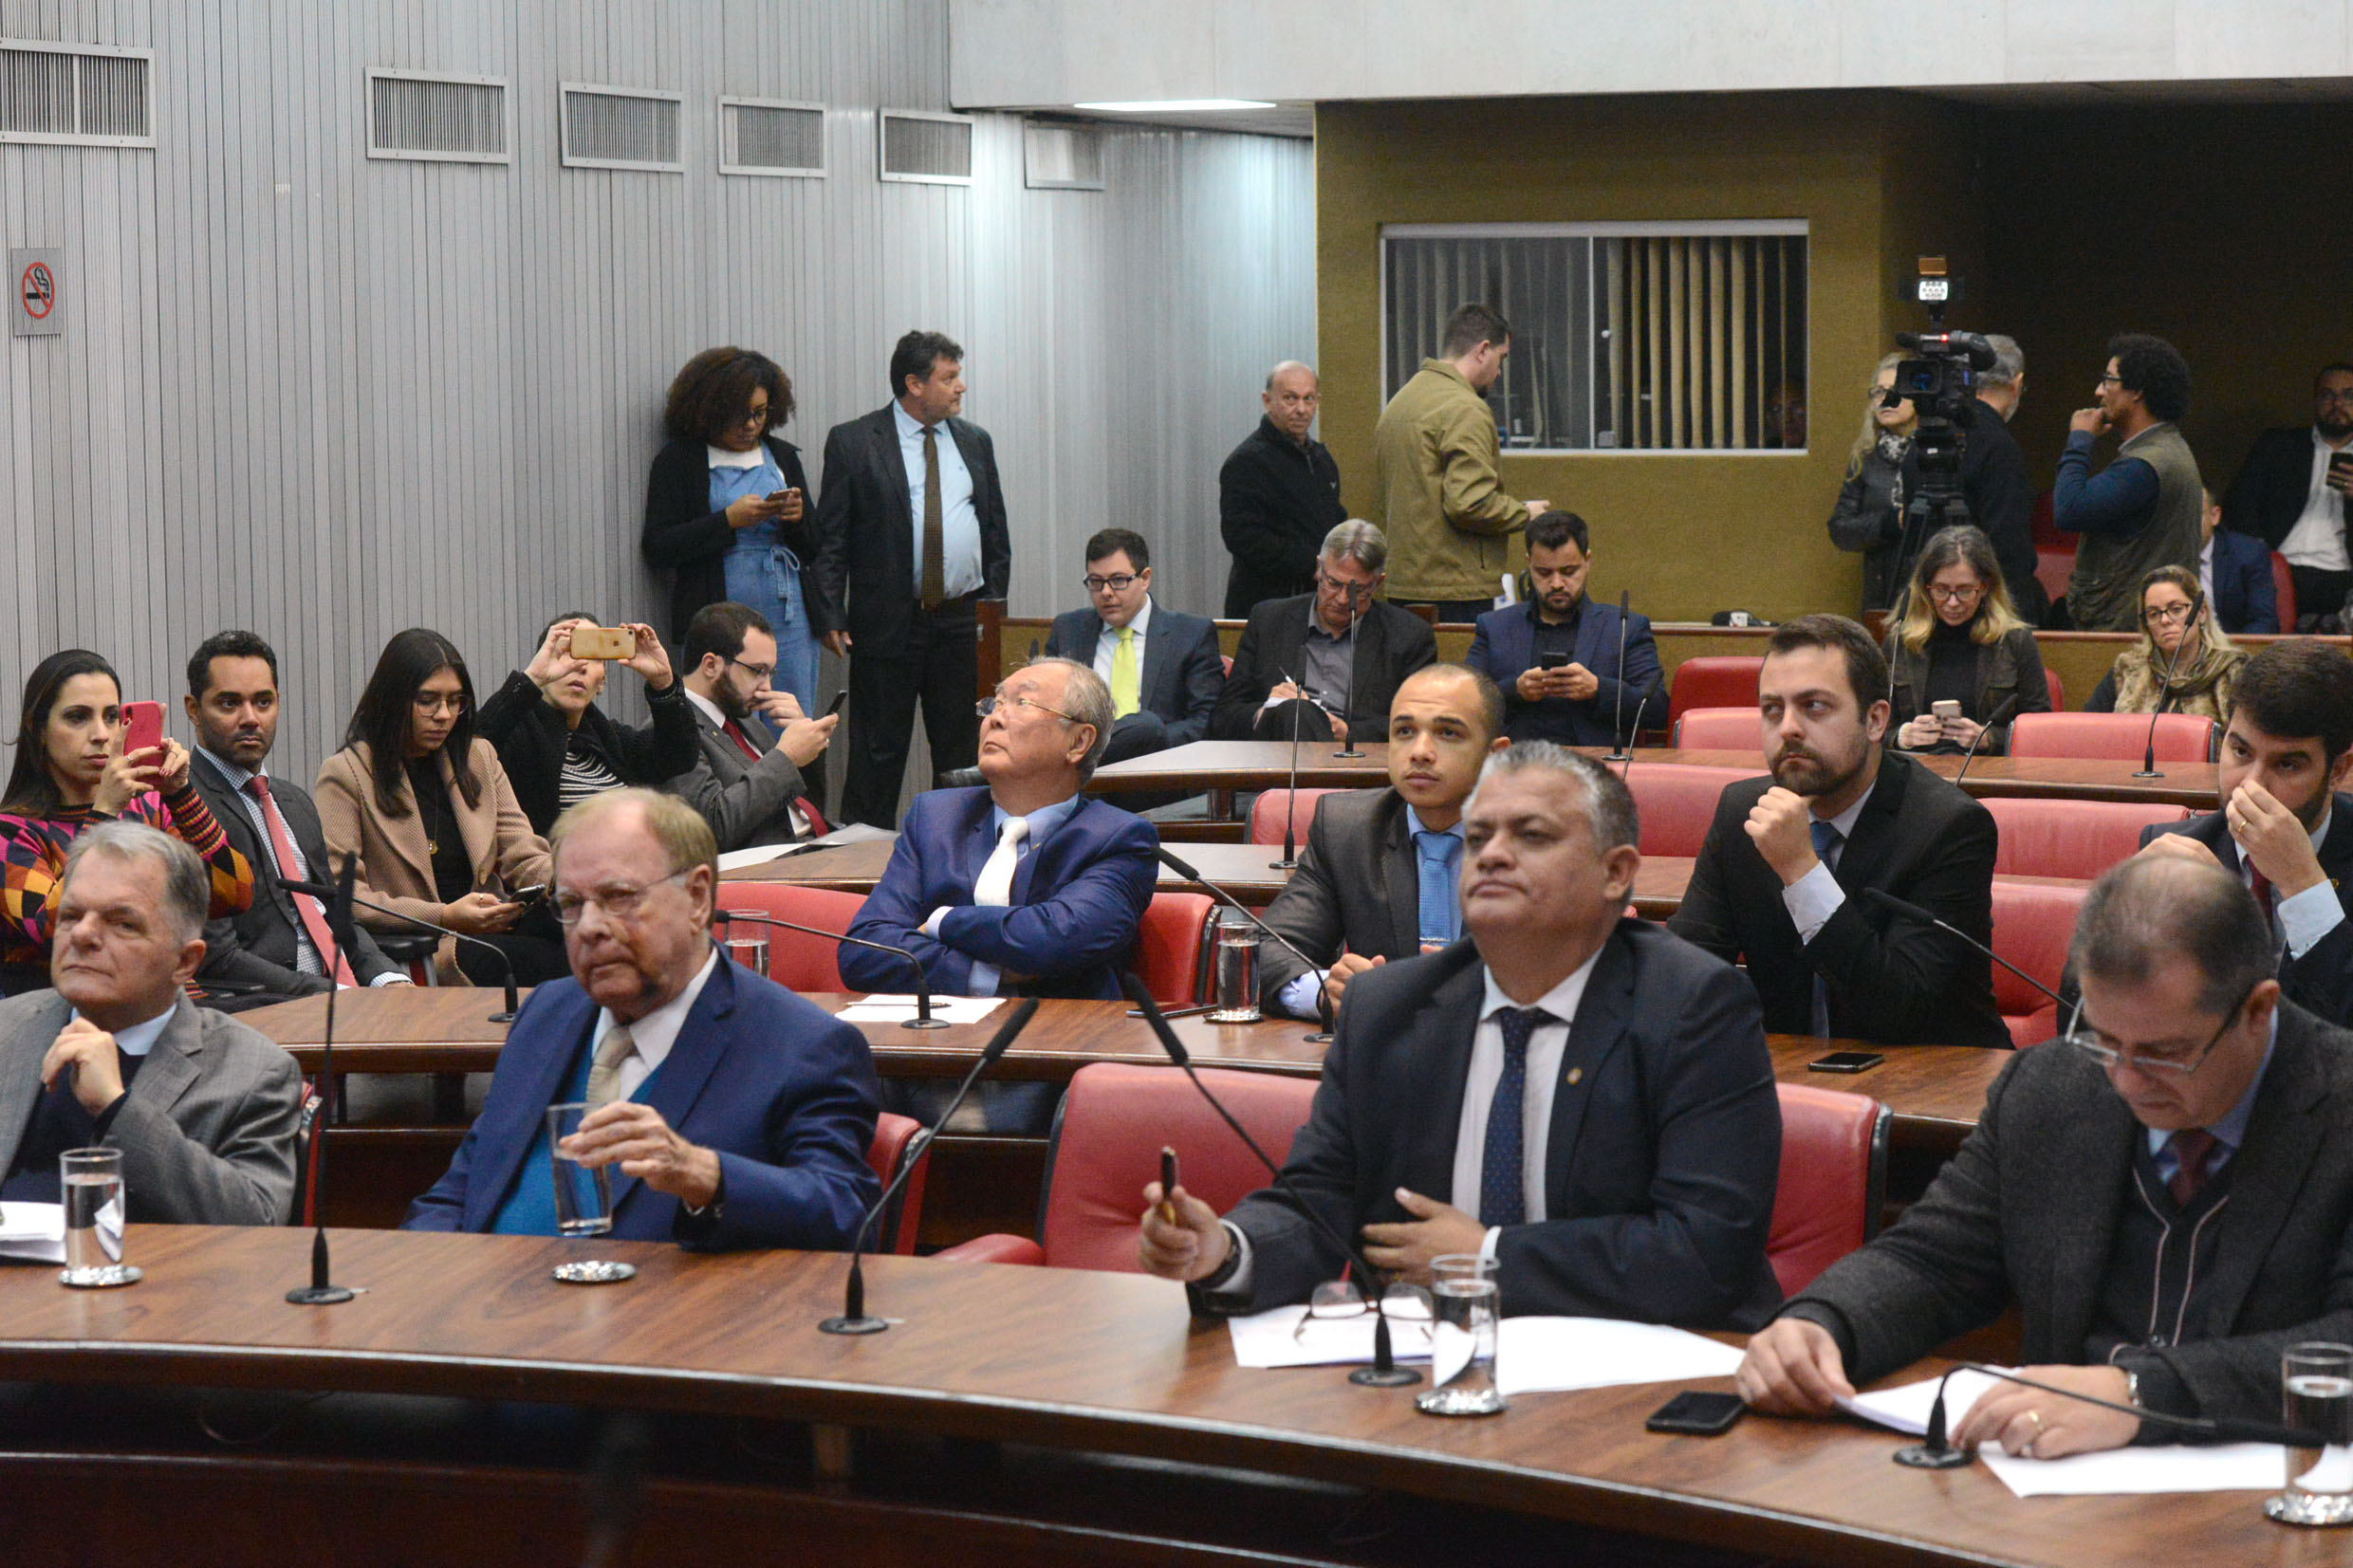 Parlamentares na comissão<a style='float:right' href='https://www3.al.sp.gov.br/repositorio/noticia/N-08-2019/fg237986.jpg' target=_blank><img src='/_img/material-file-download-white.png' width='14px' alt='Clique para baixar a imagem'></a>